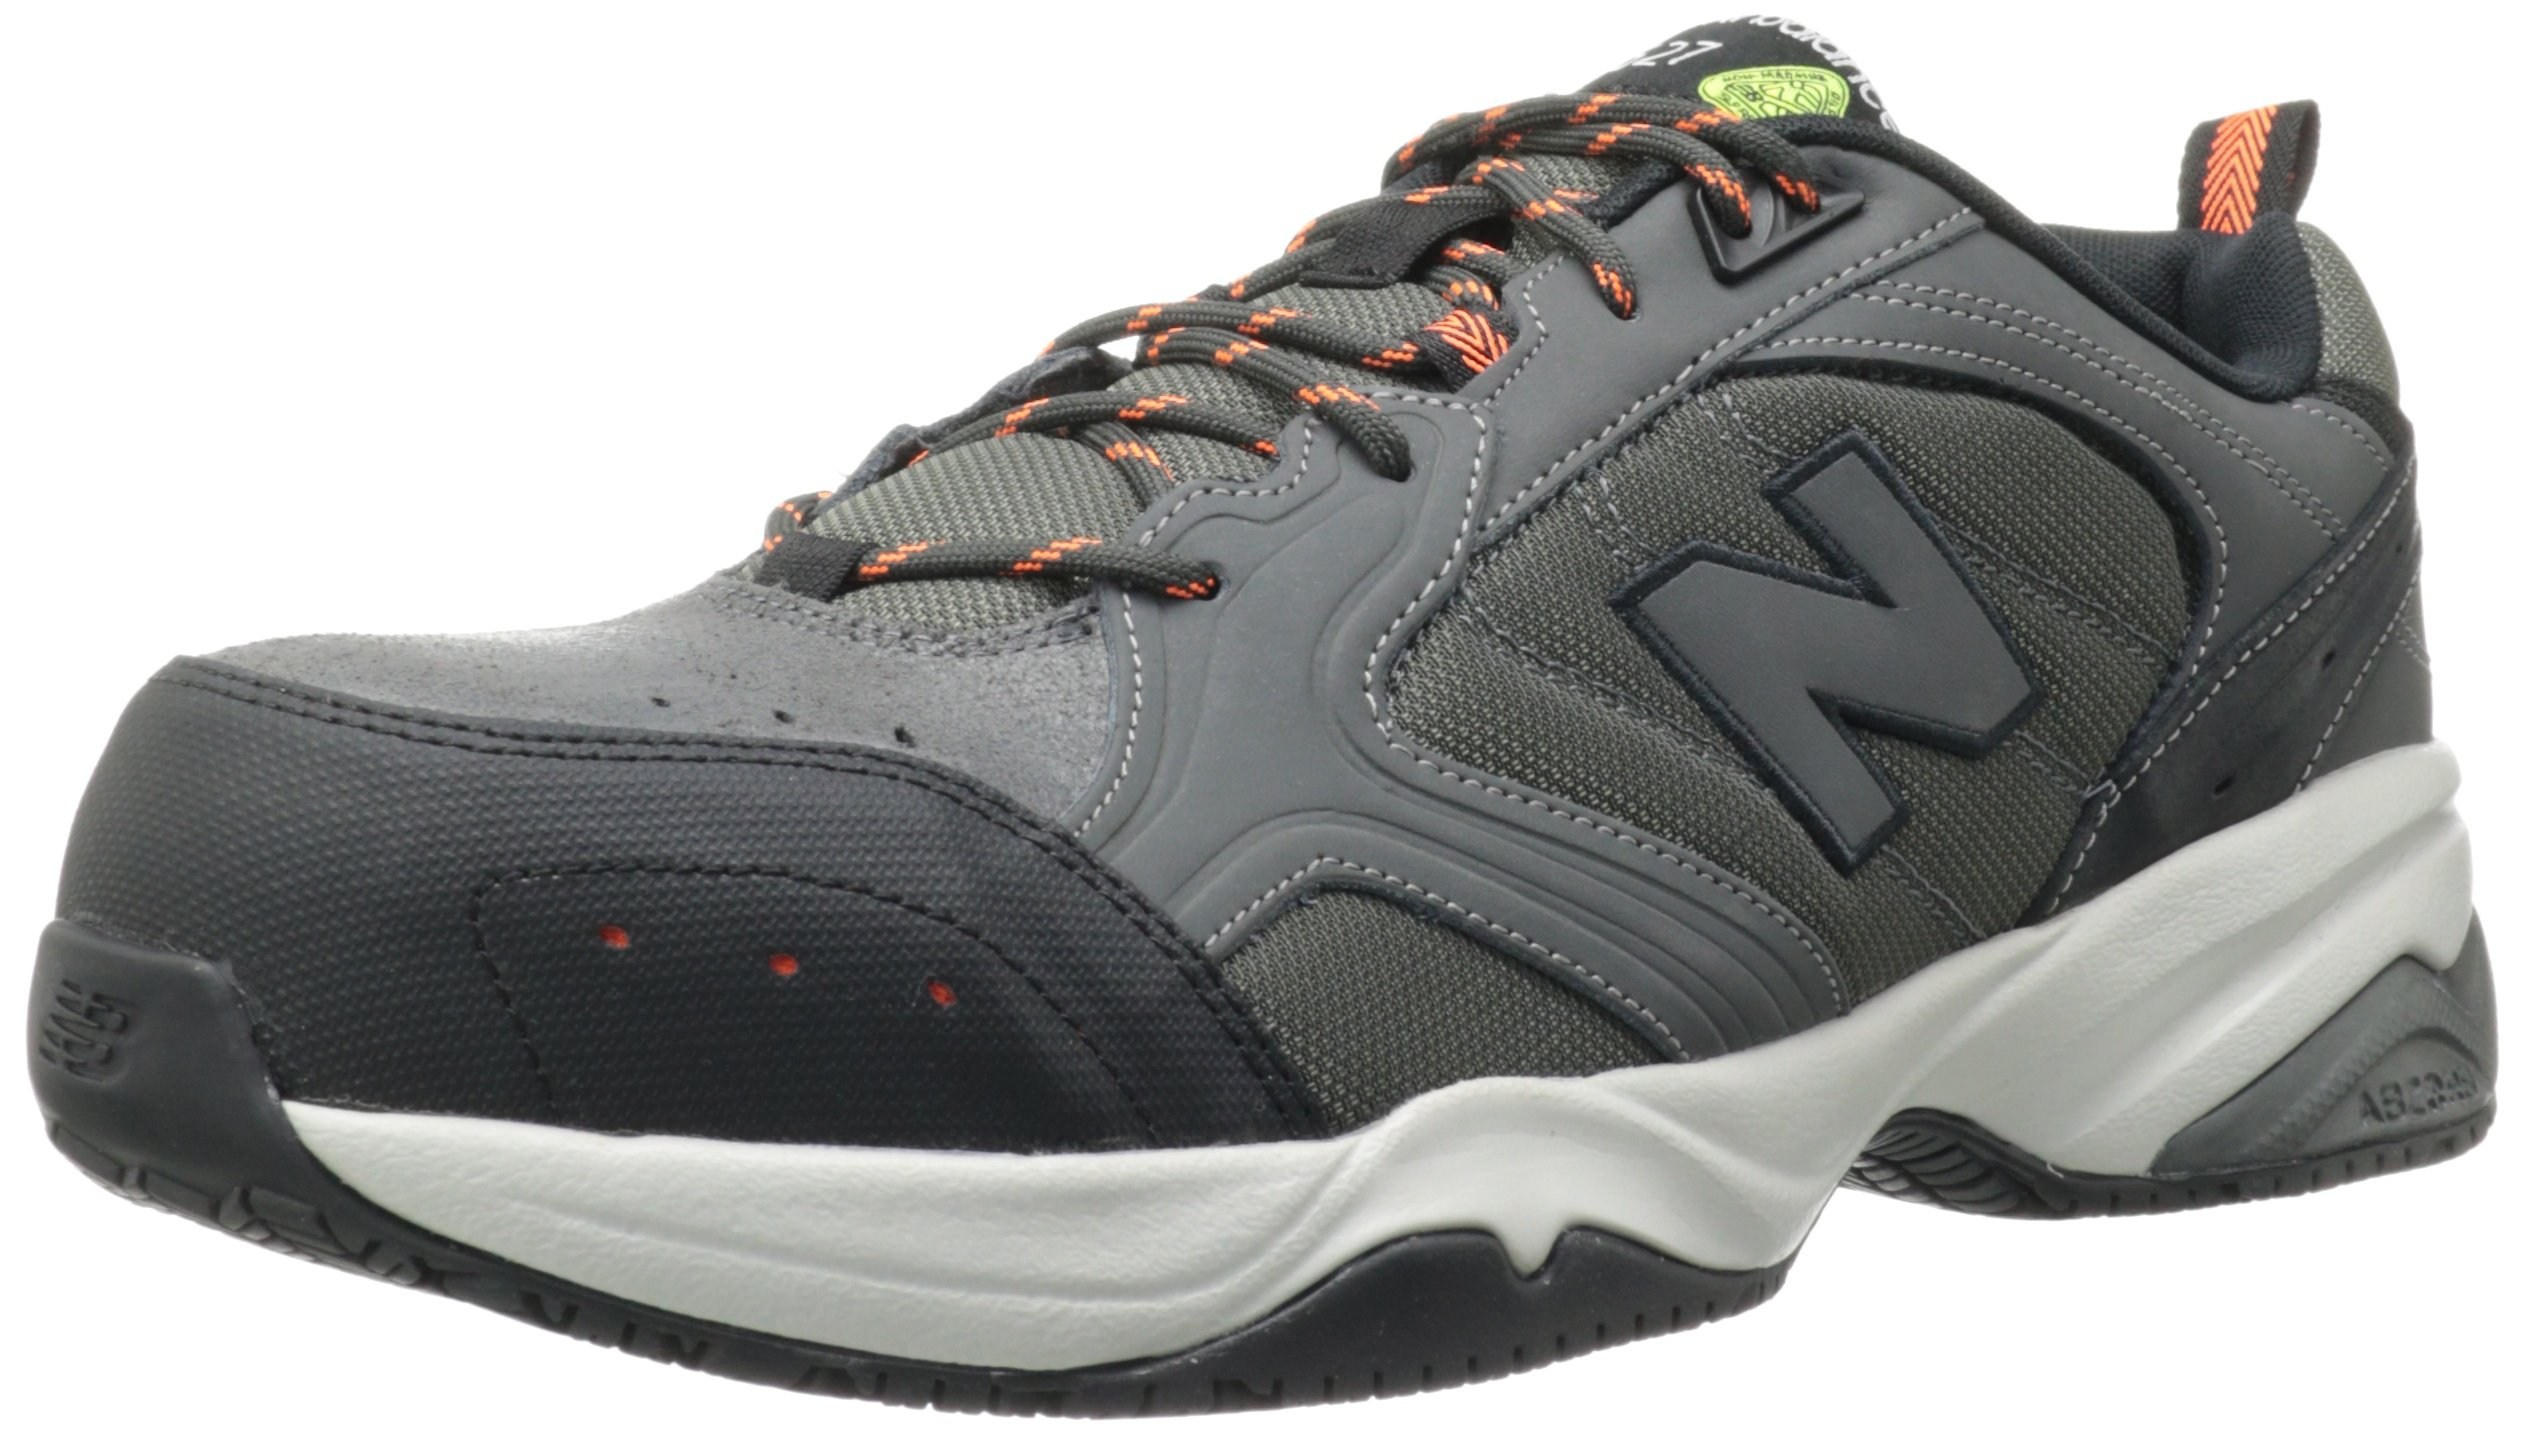 New Balance Men's MID627 Steel-Toe Work Shoe,Grey,17 D US